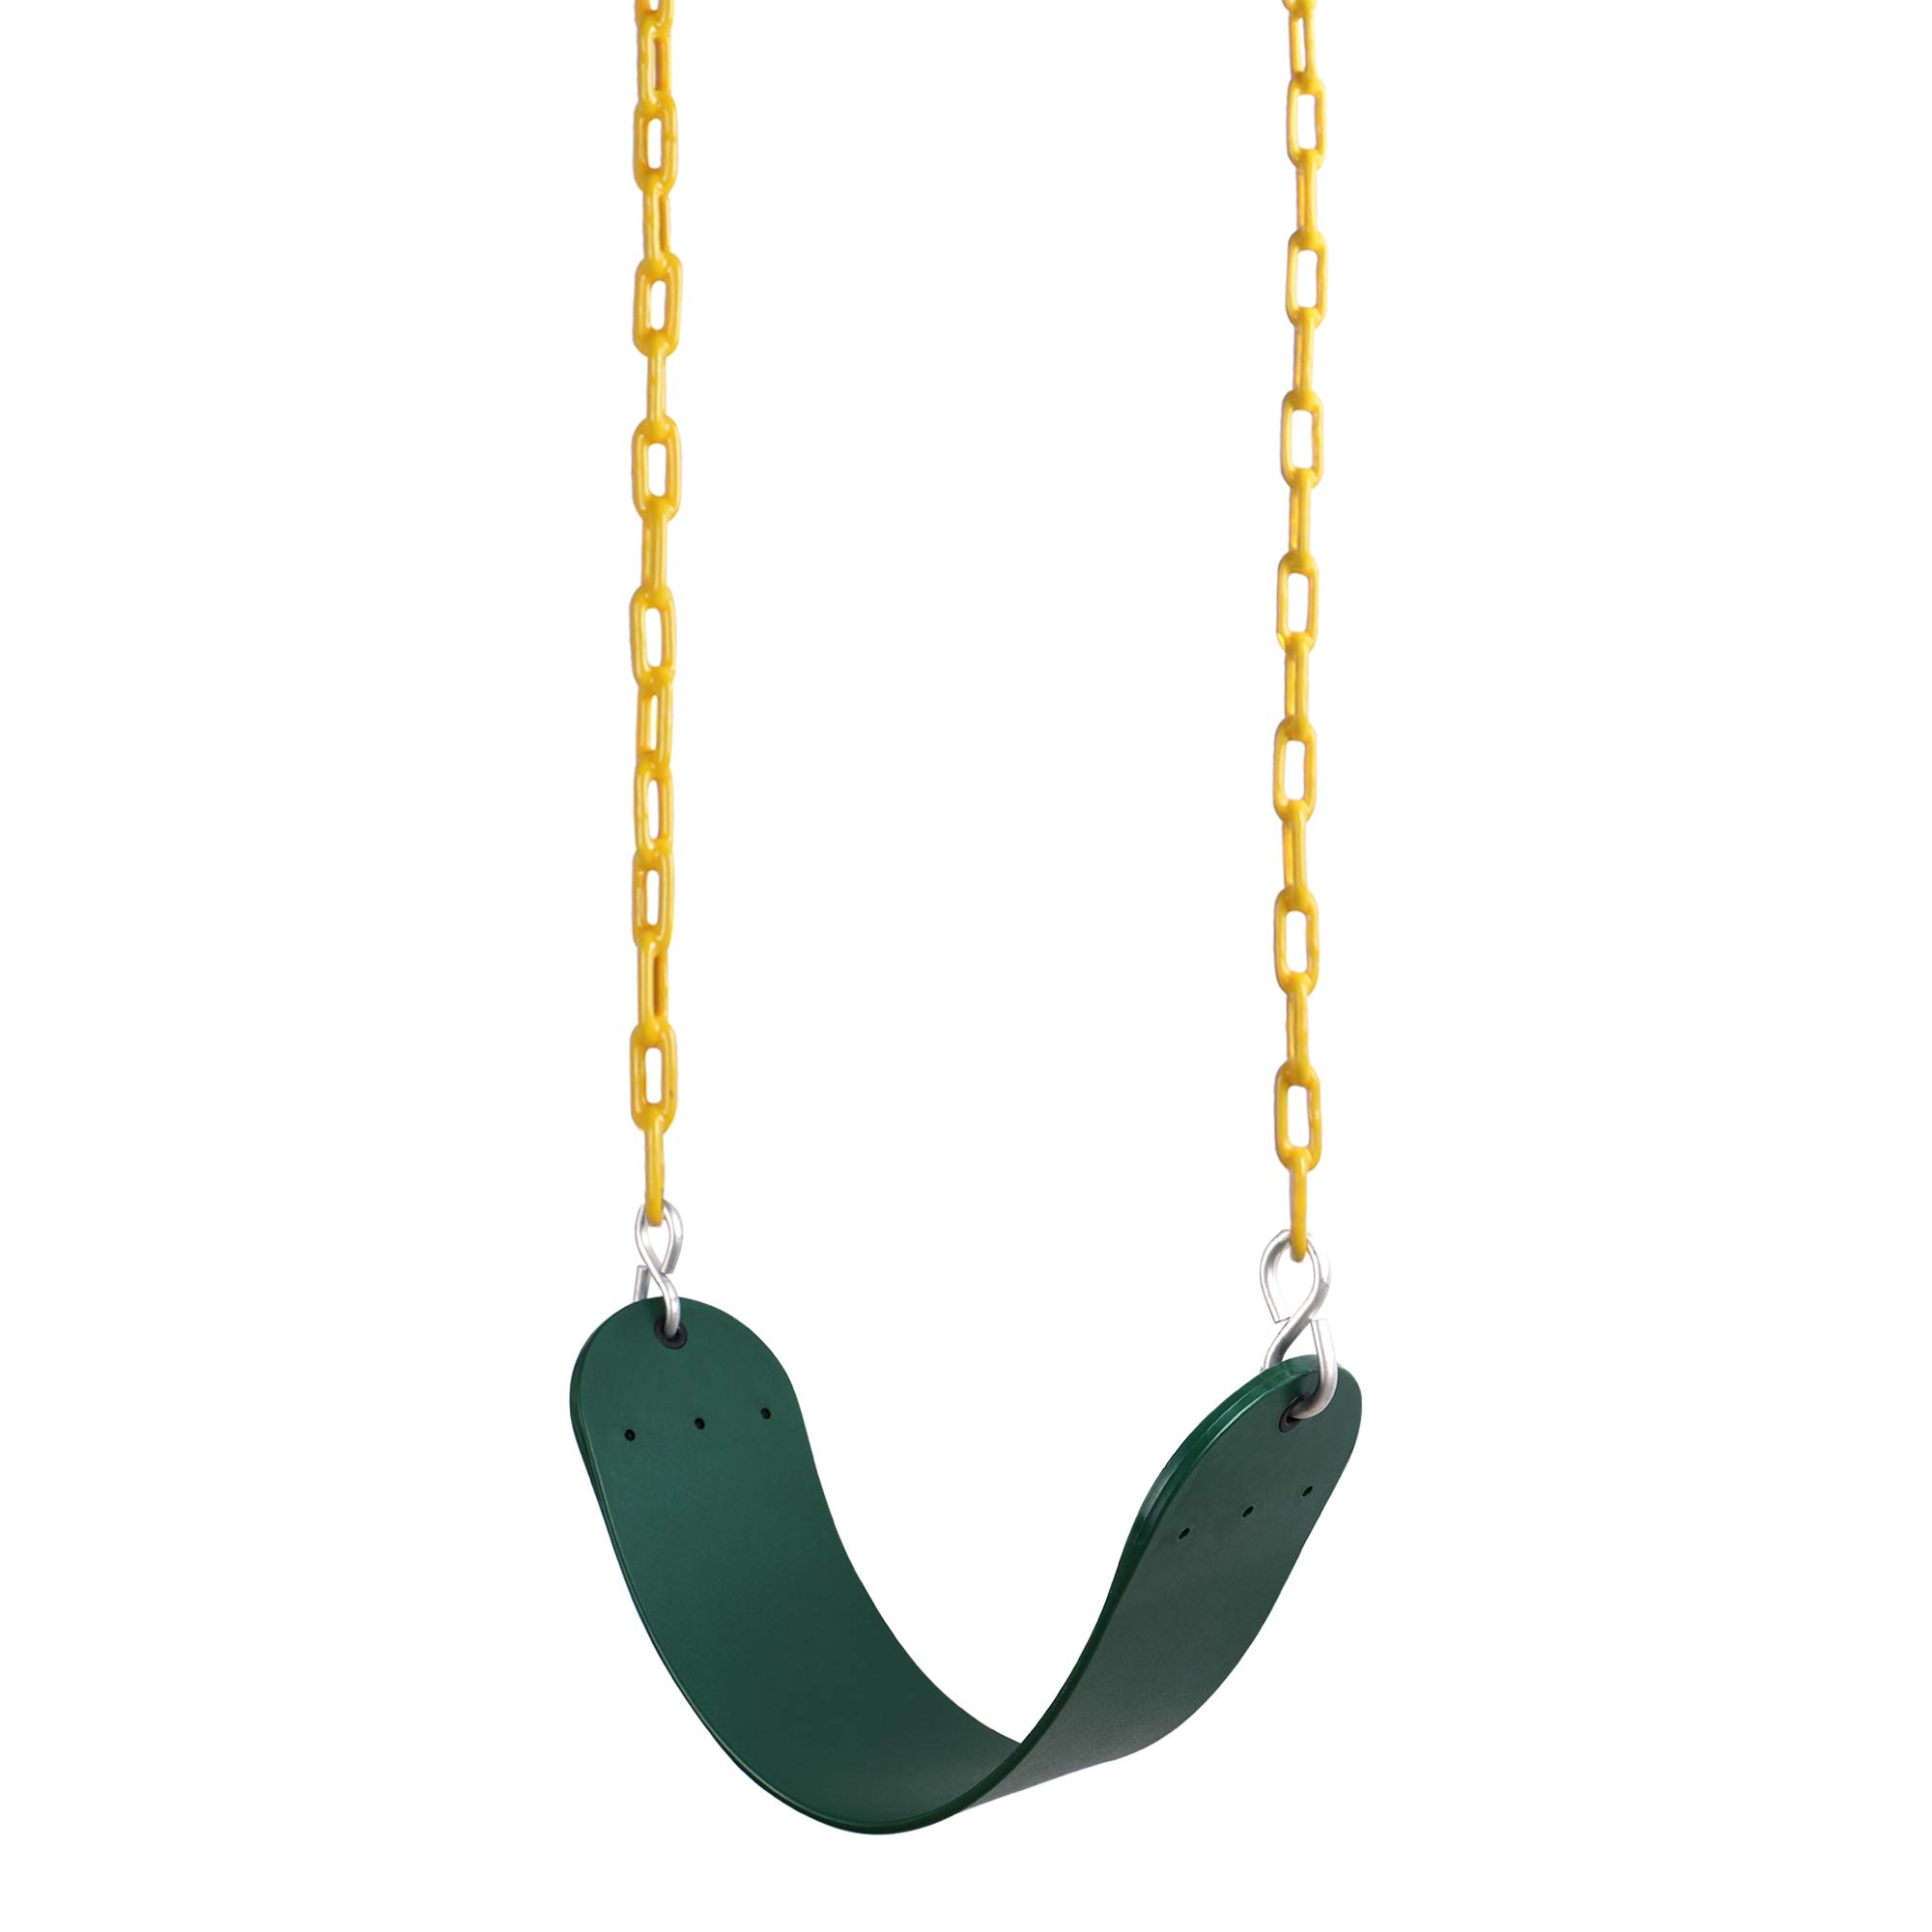 REEHUT Swing Seat Heavy Duty with 66'' Chain Plastic Coated, Swing Set Accessories Swing Seat Replacement, 250 LB Weight Limit (Green) by REEHUT